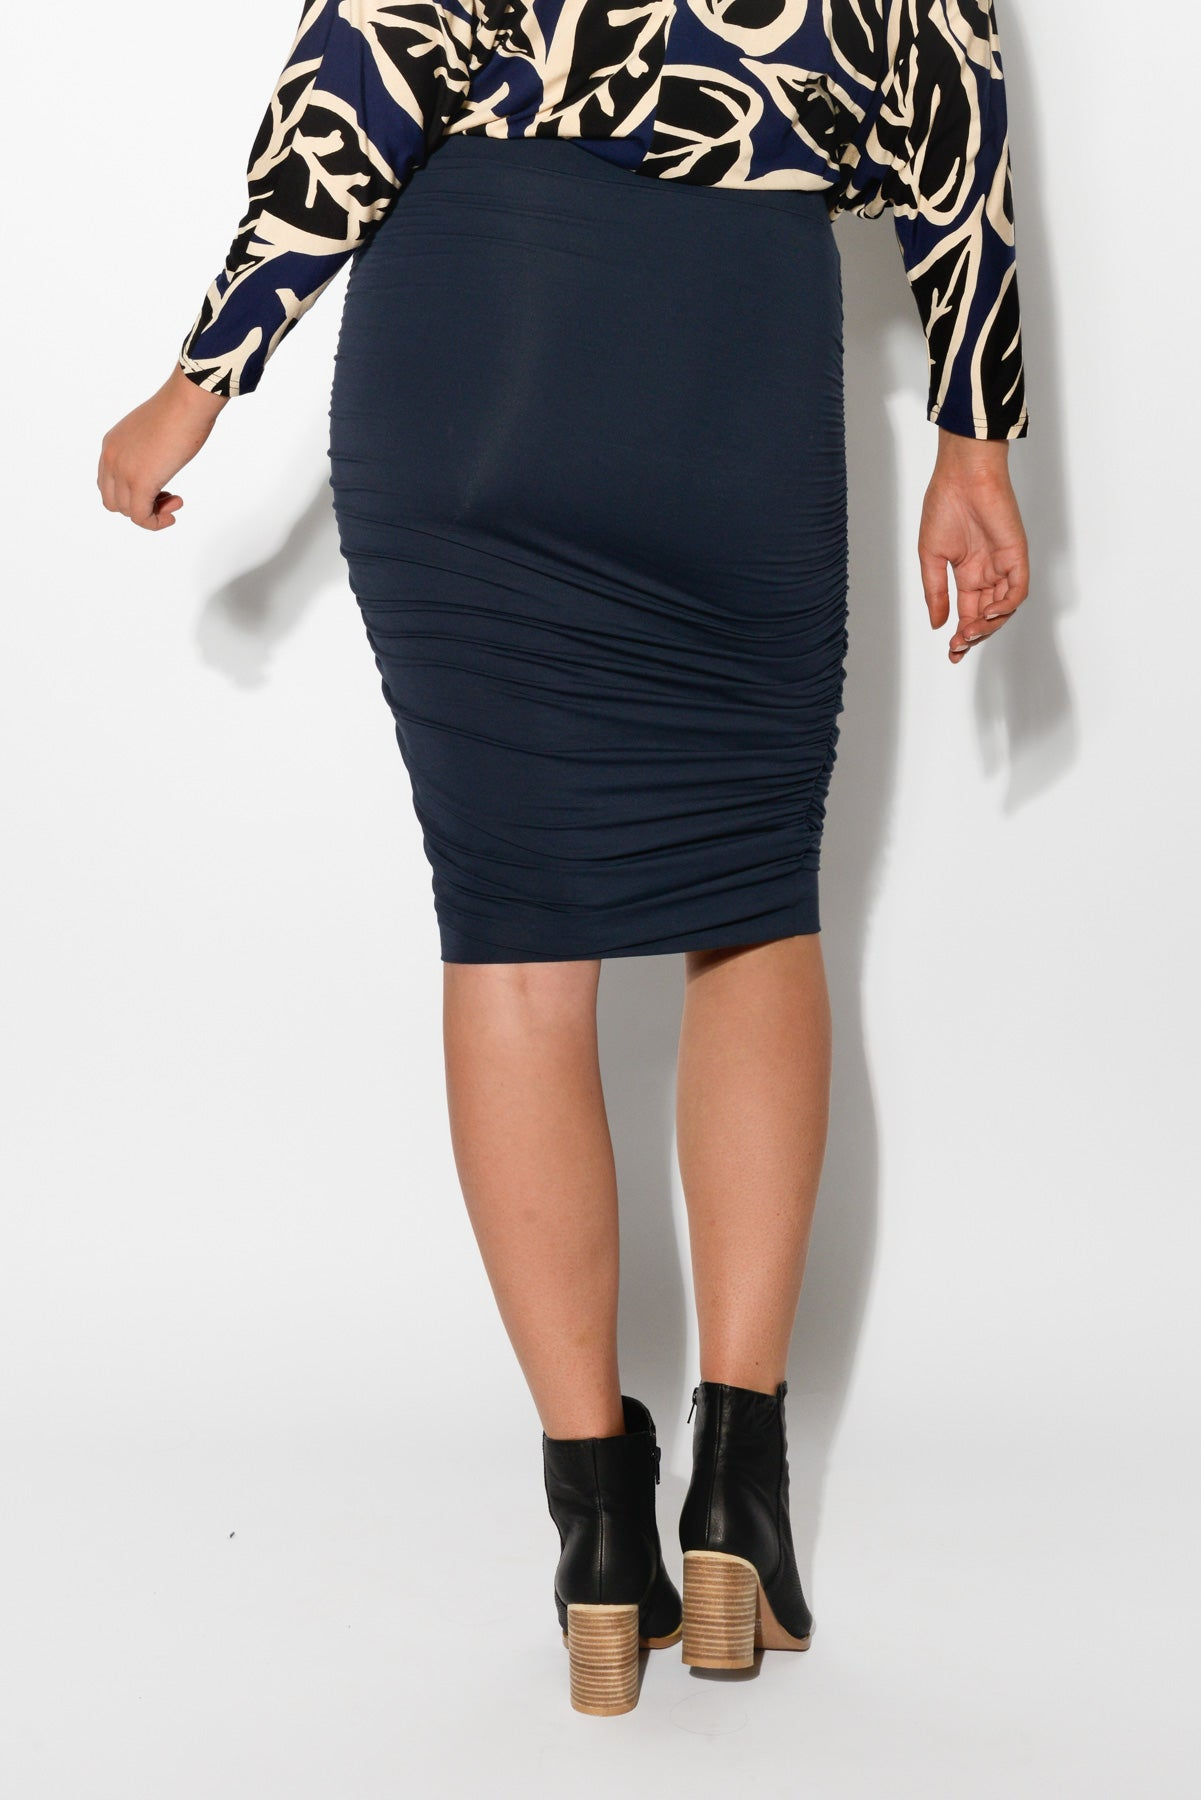 Dark Navy Bamboo Ruched Skirt - Blue Bungalow